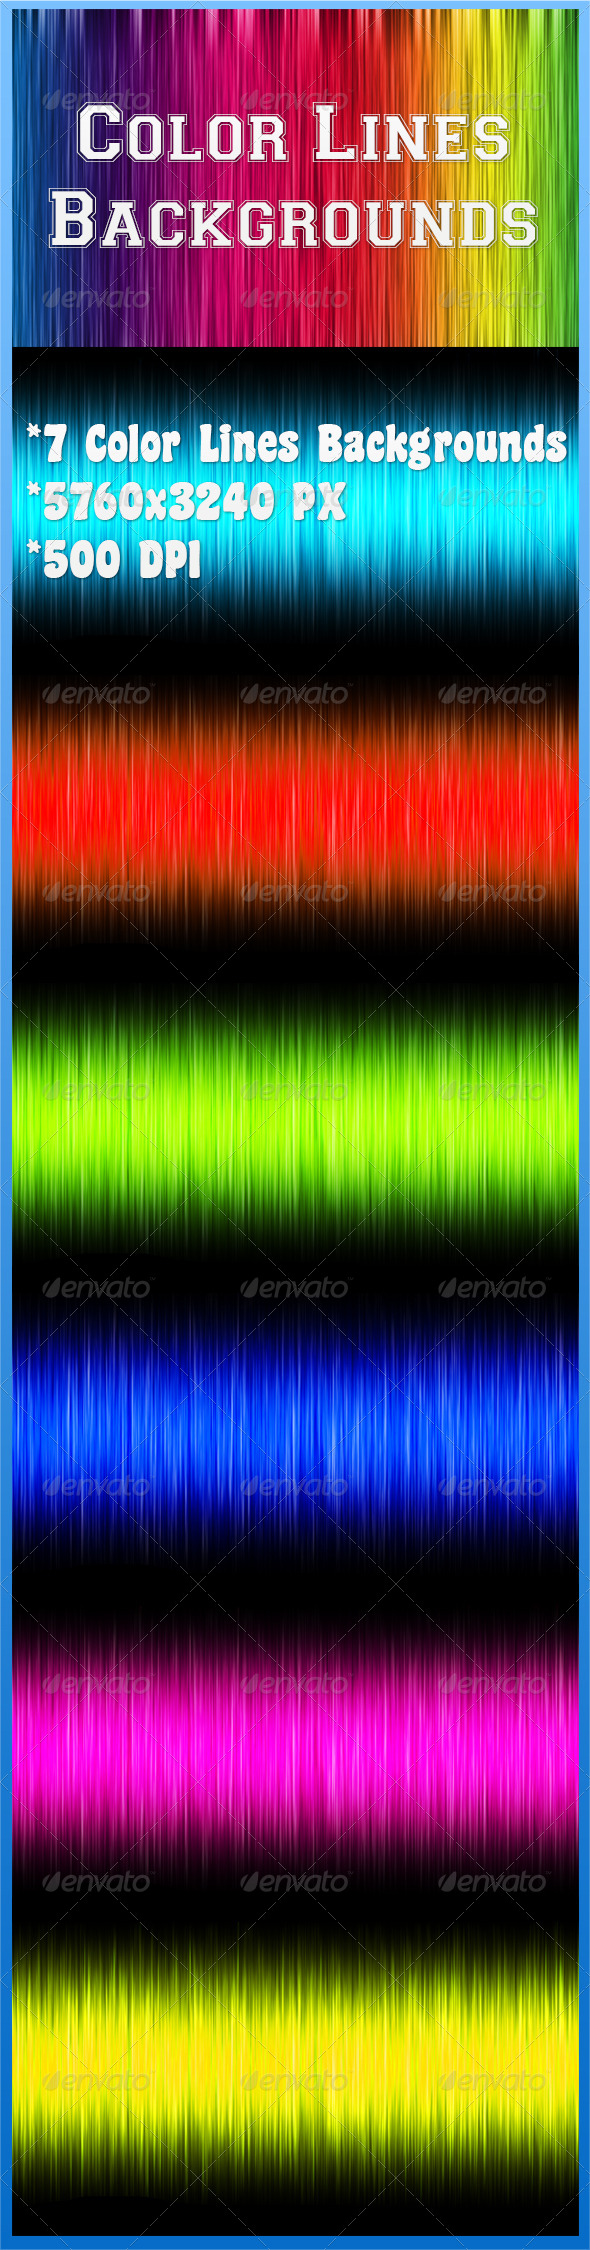 Color Lines Backgrounds - Backgrounds Graphics